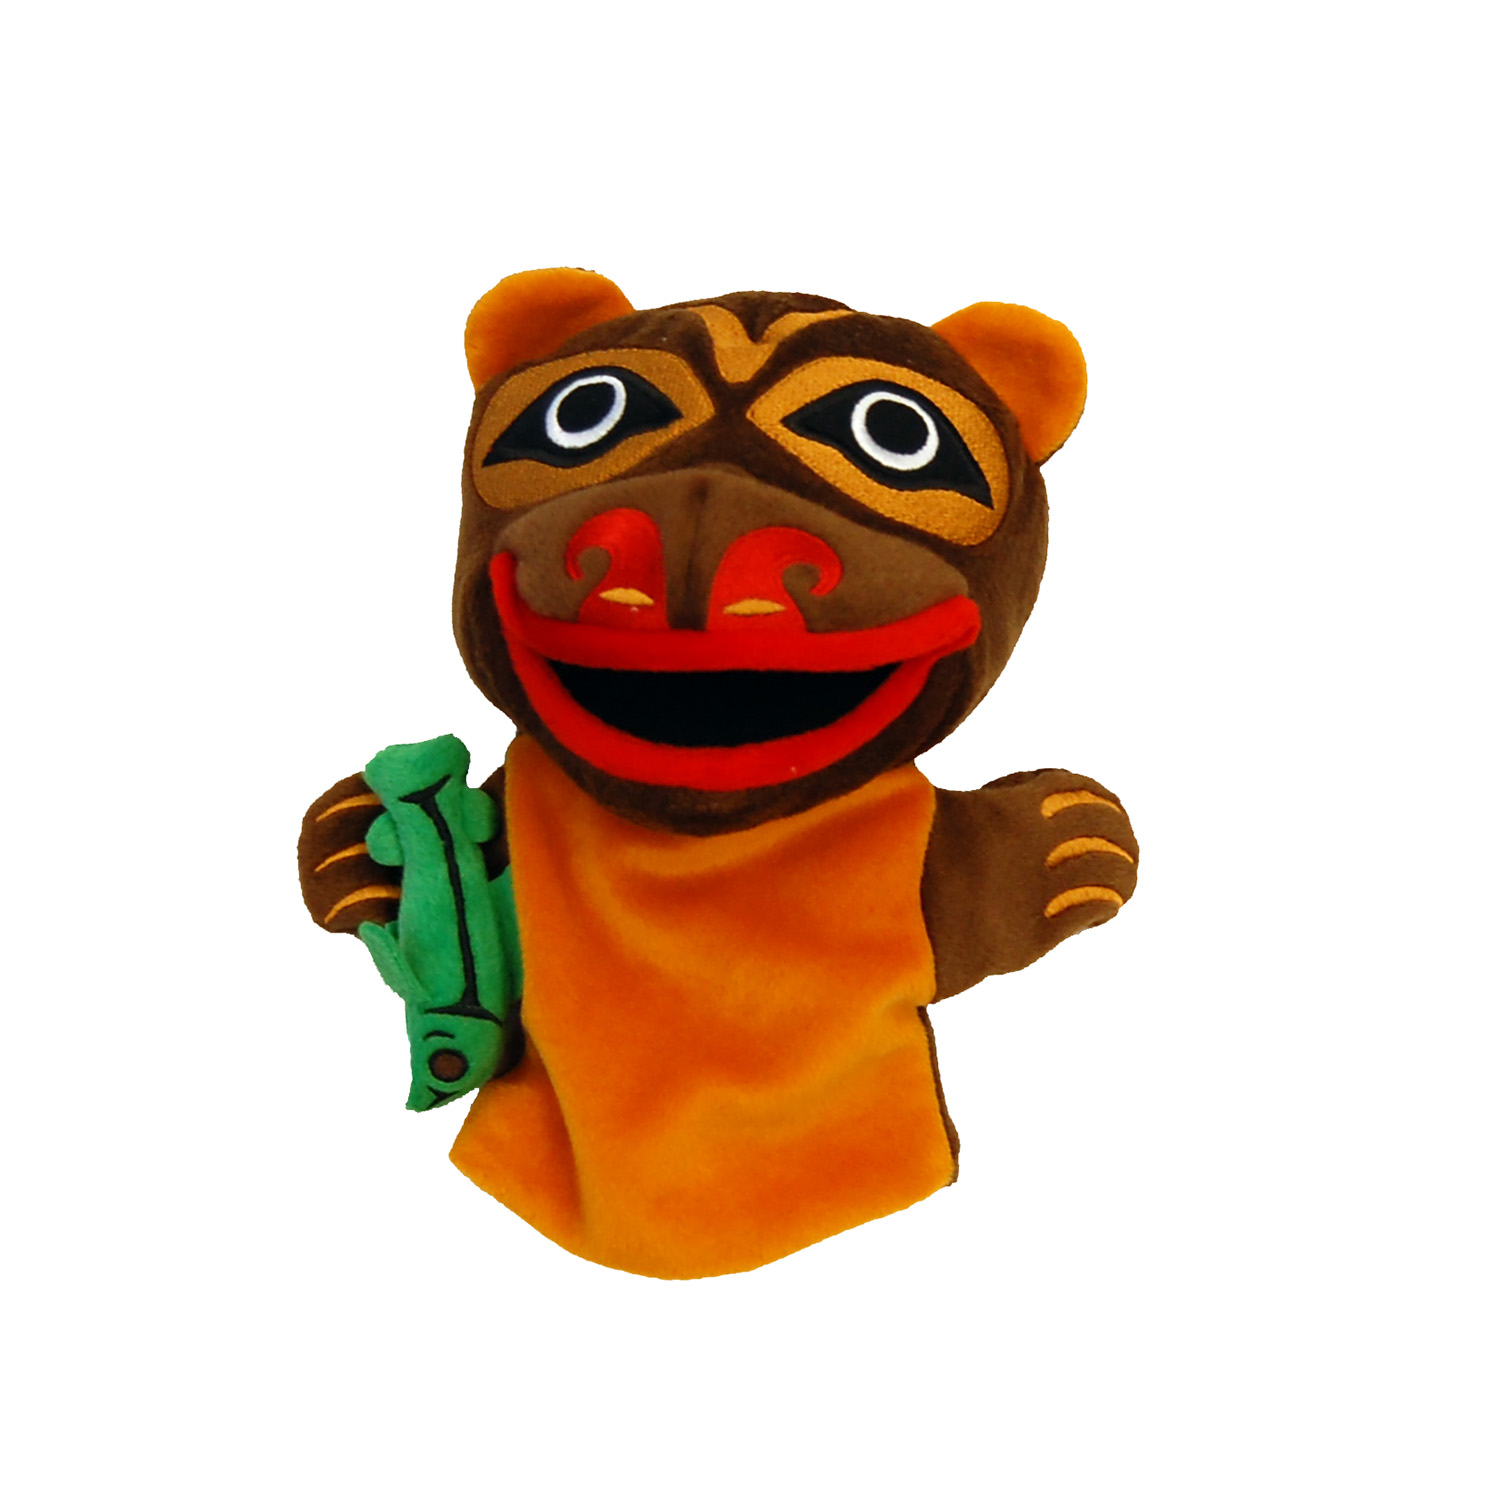 brown and orange bear puppet with First Nations artwork markings